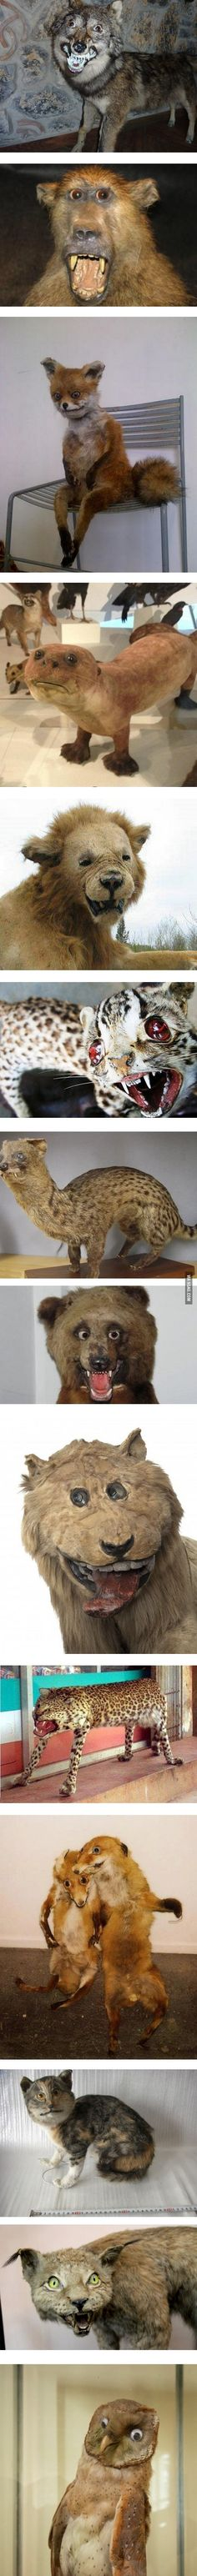 Taxidermy gone wrong - never go full retard!